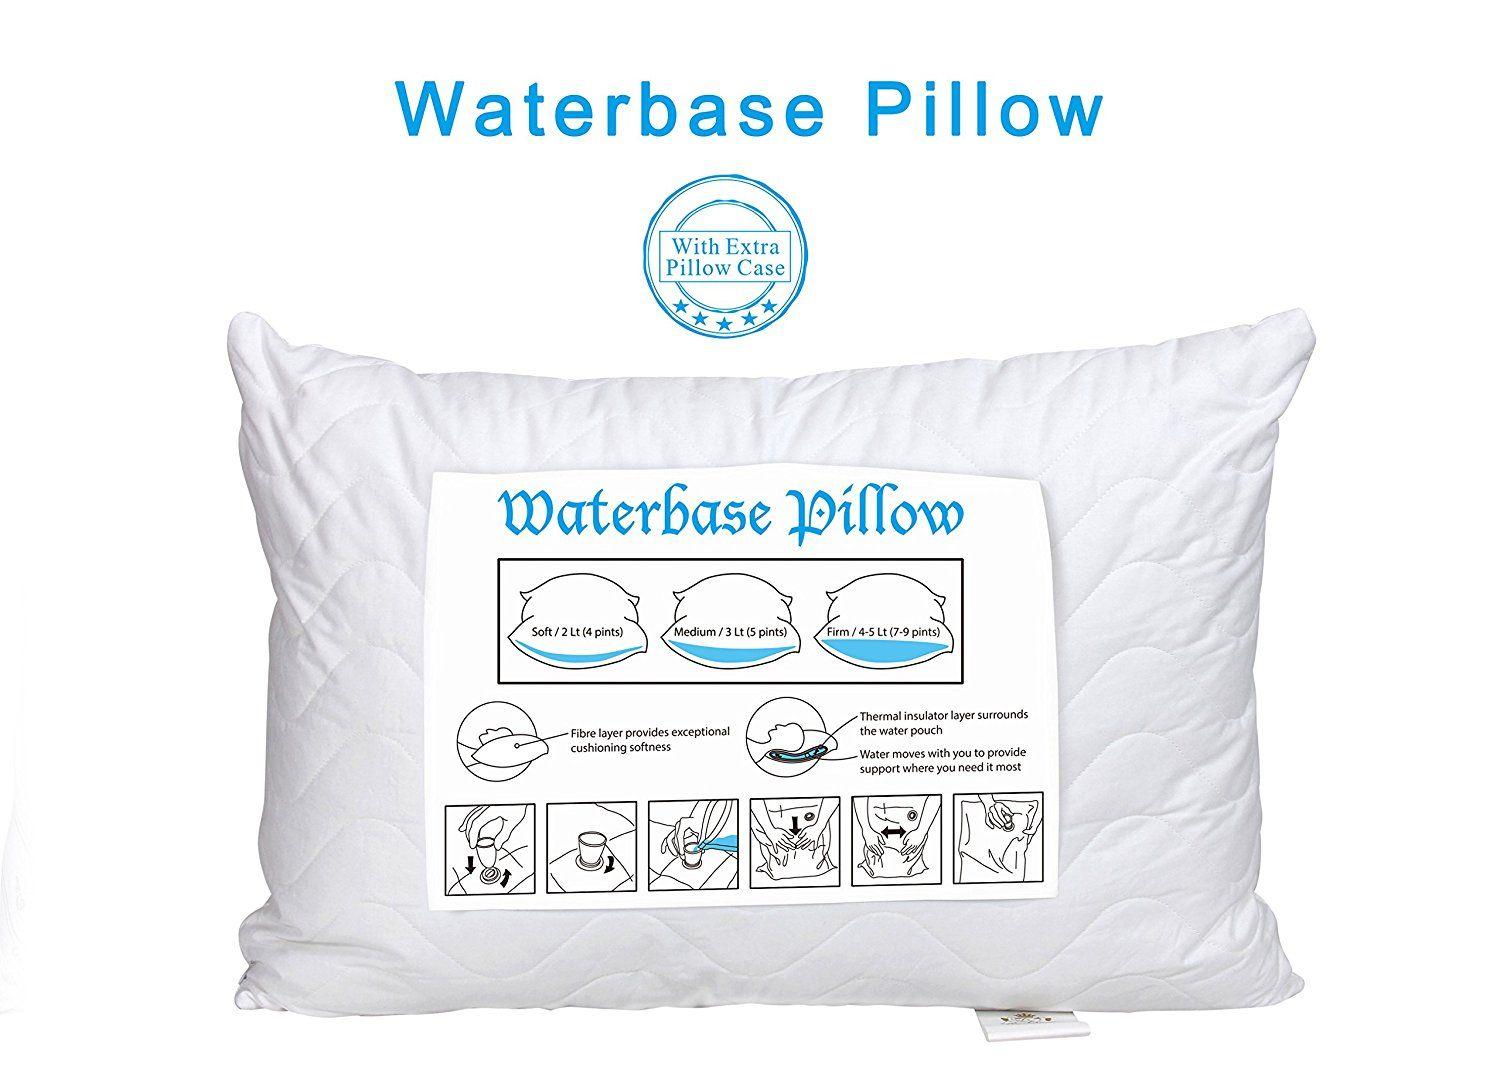 Pillow Cases Water Pillow Waterbase